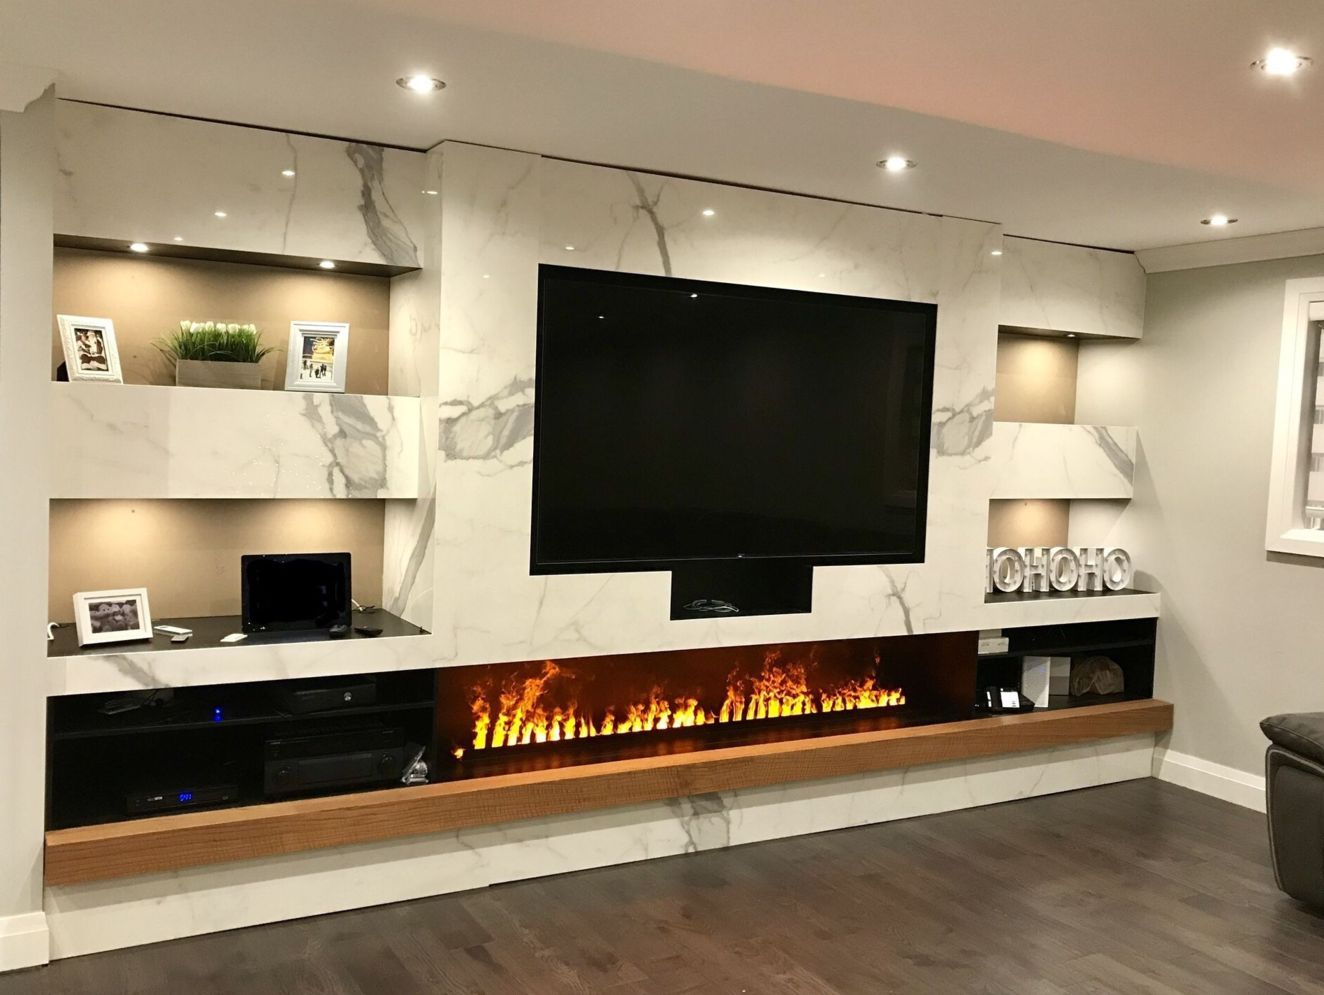 Best Fireplace Tv Wall Ideas The Good Advice For Mounting Tv Above Fireplace Shairoom Com Living Room With Fireplace Living Room Tv Wall Living Room Tv